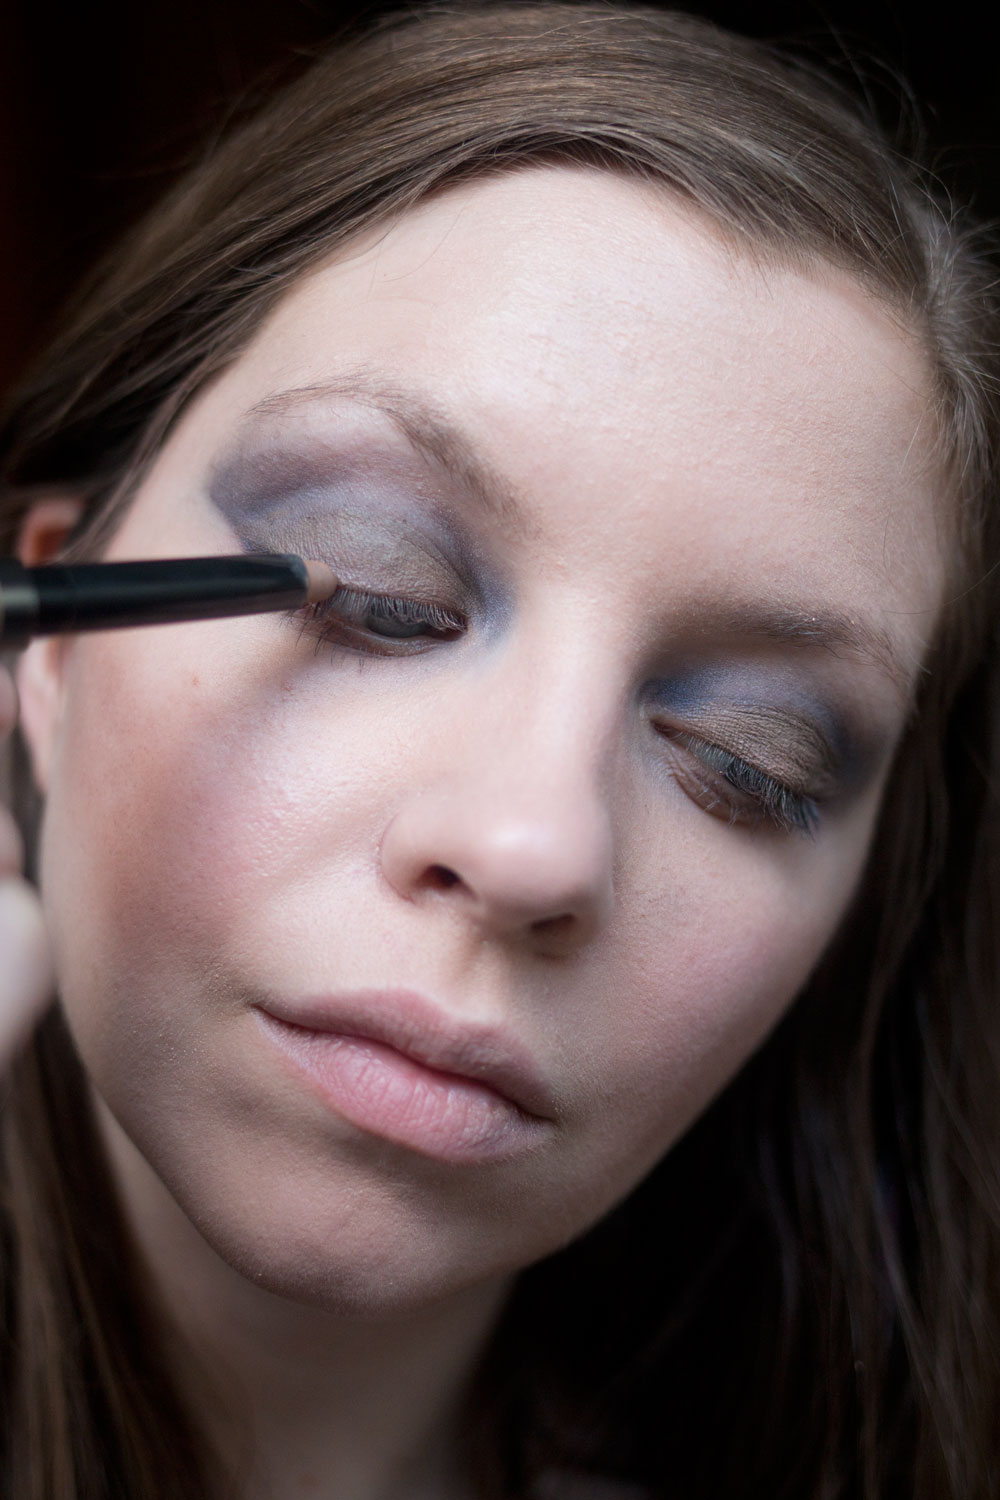 Burberry Beauty Blue Smokey Eye with Eye Contour Sculpt + Smoke Pen in Almond // Hello Rigby Seattle Beauty Blog